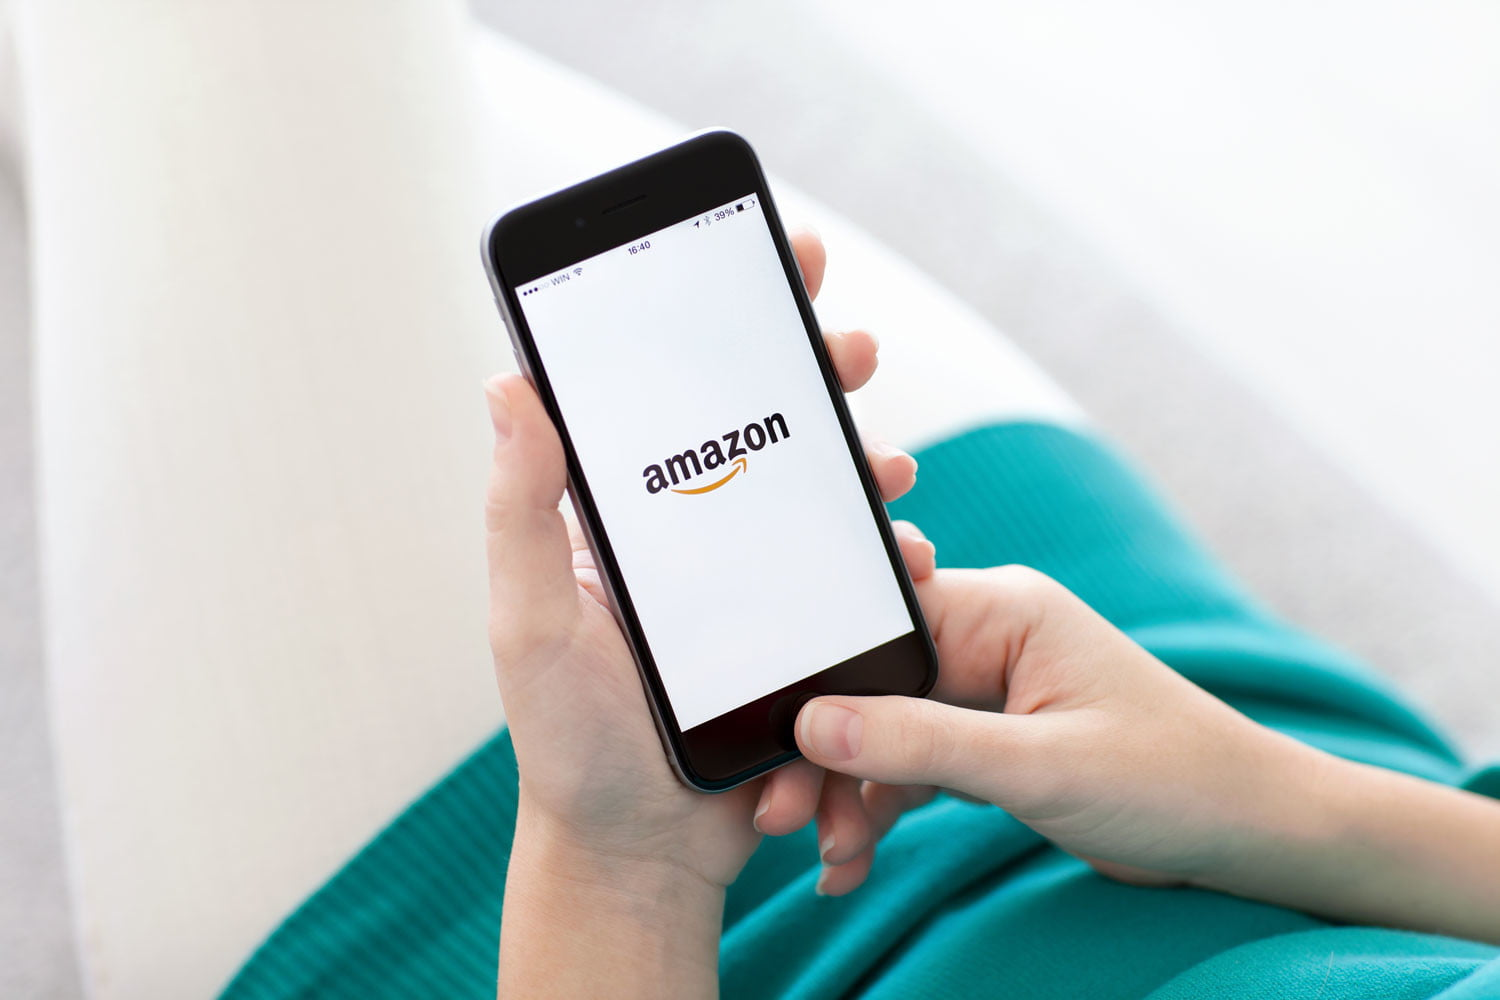 Amazon Launches Part Finder to Help You Find Those Pesky Spare Parts     Amazon Launches Part Finder to Help You Find Those Pesky Spare Parts    Digital Trends